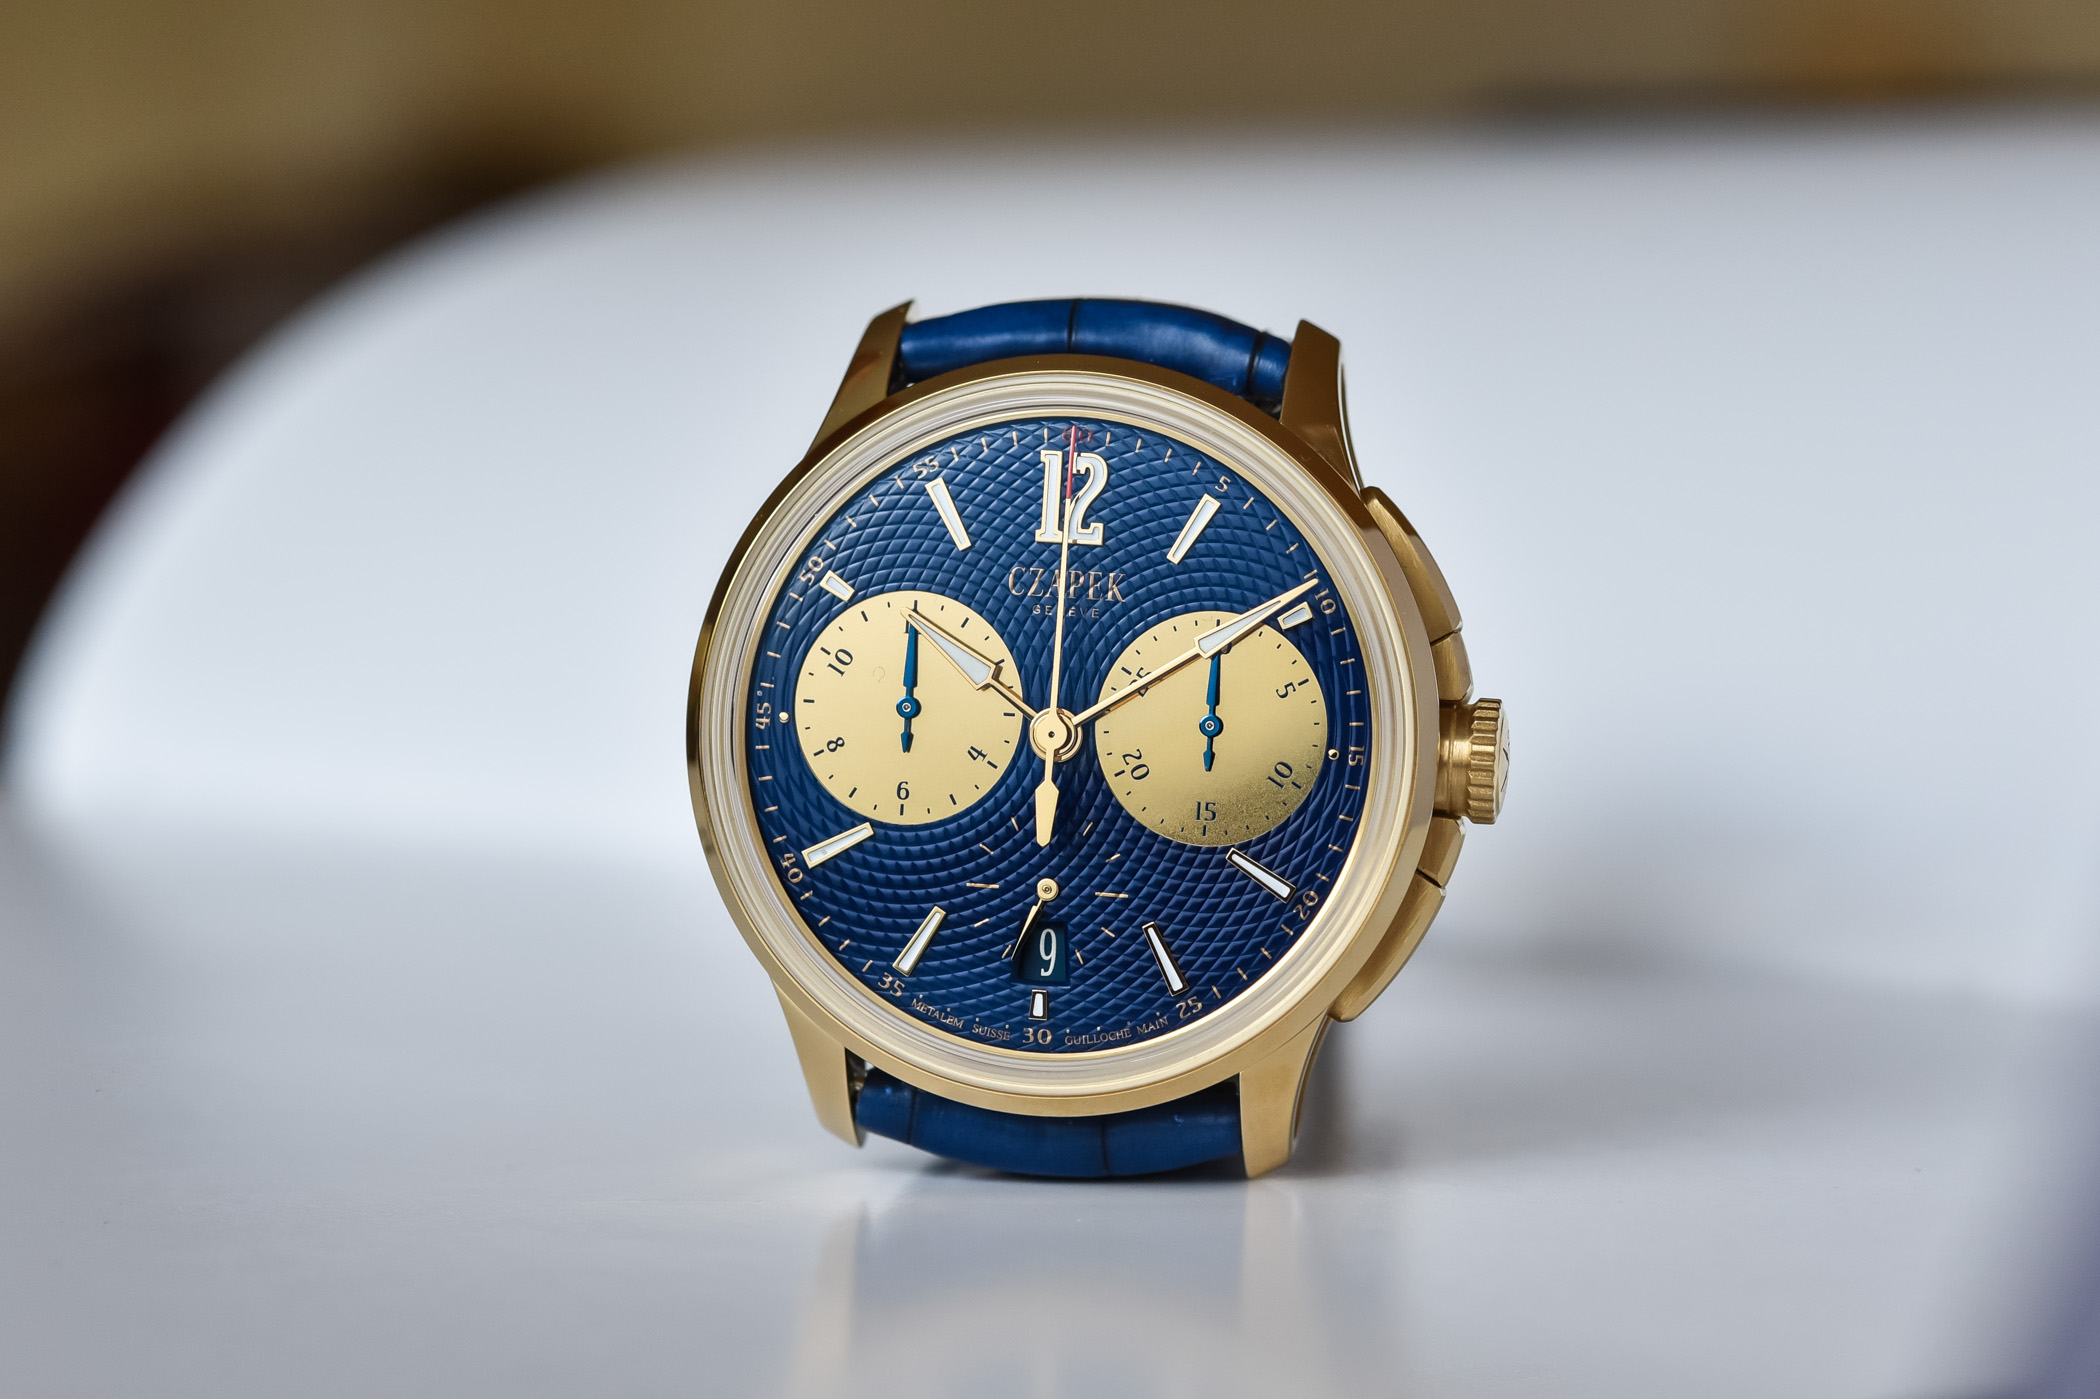 Czapek Faubourg de Cracovie Ocean d'Or Chronograph - 4